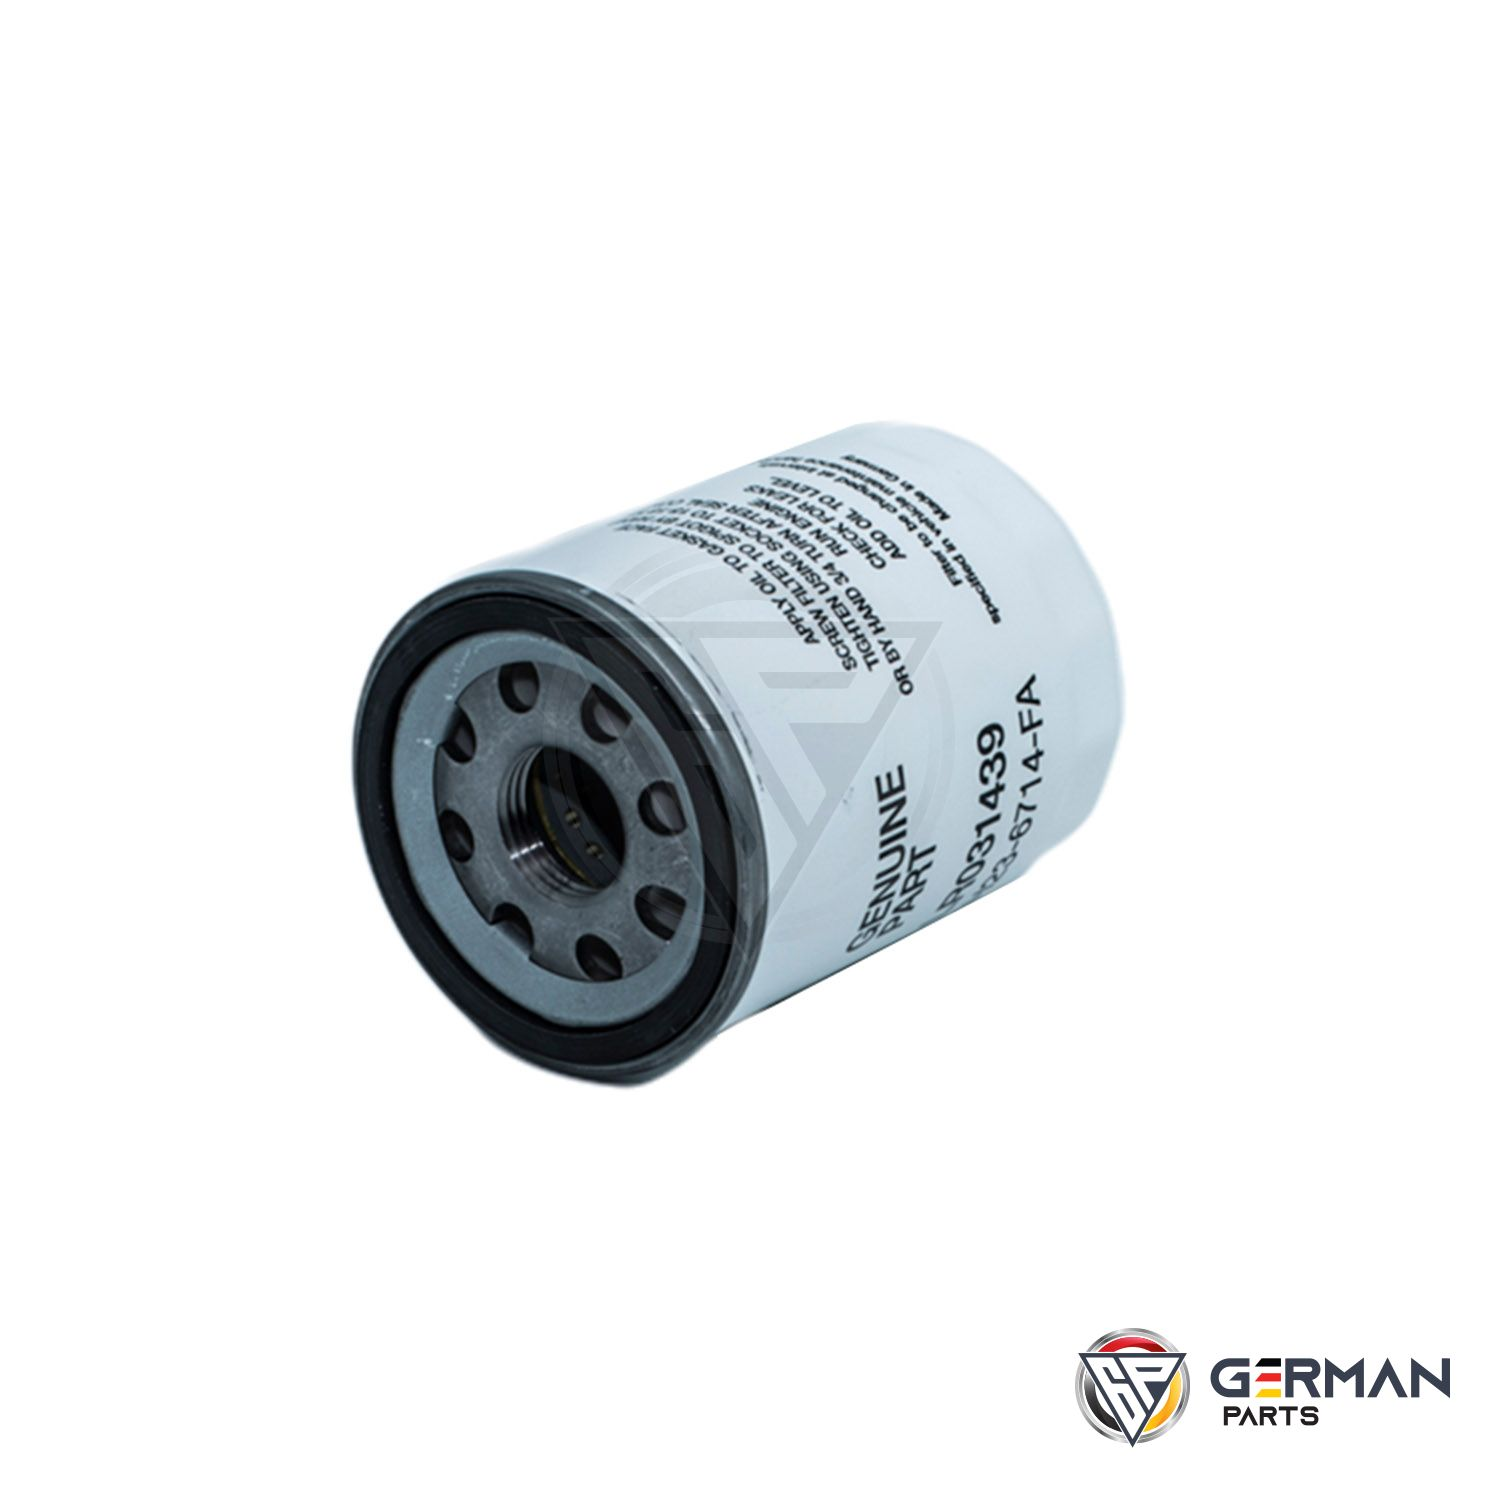 Buy Genuine Land Rover Oil Filter LR031439 - German Parts